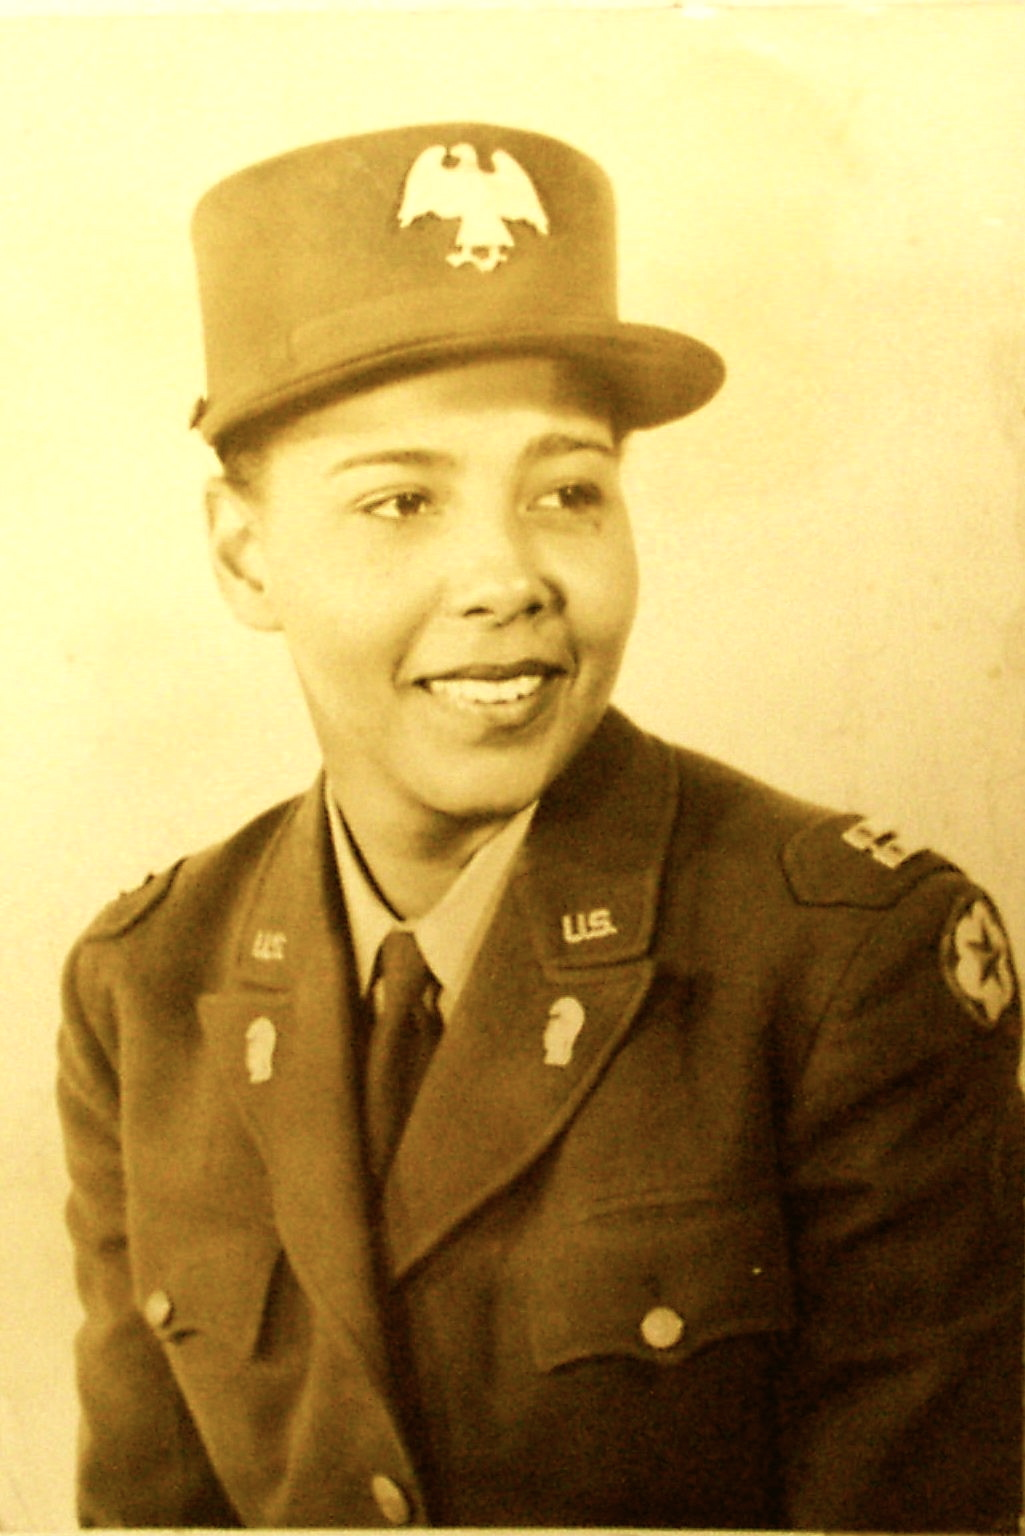 2-MAJOR CHARITY ADAMS, WOMEN'S ARMY CORP'S BLACK 6888 REGIMENT FORT DES MOINES, IOWA (c. MARTHA S. PUTNEY, MARY McLEOD BETHUNE COUNCIL HOUSE)